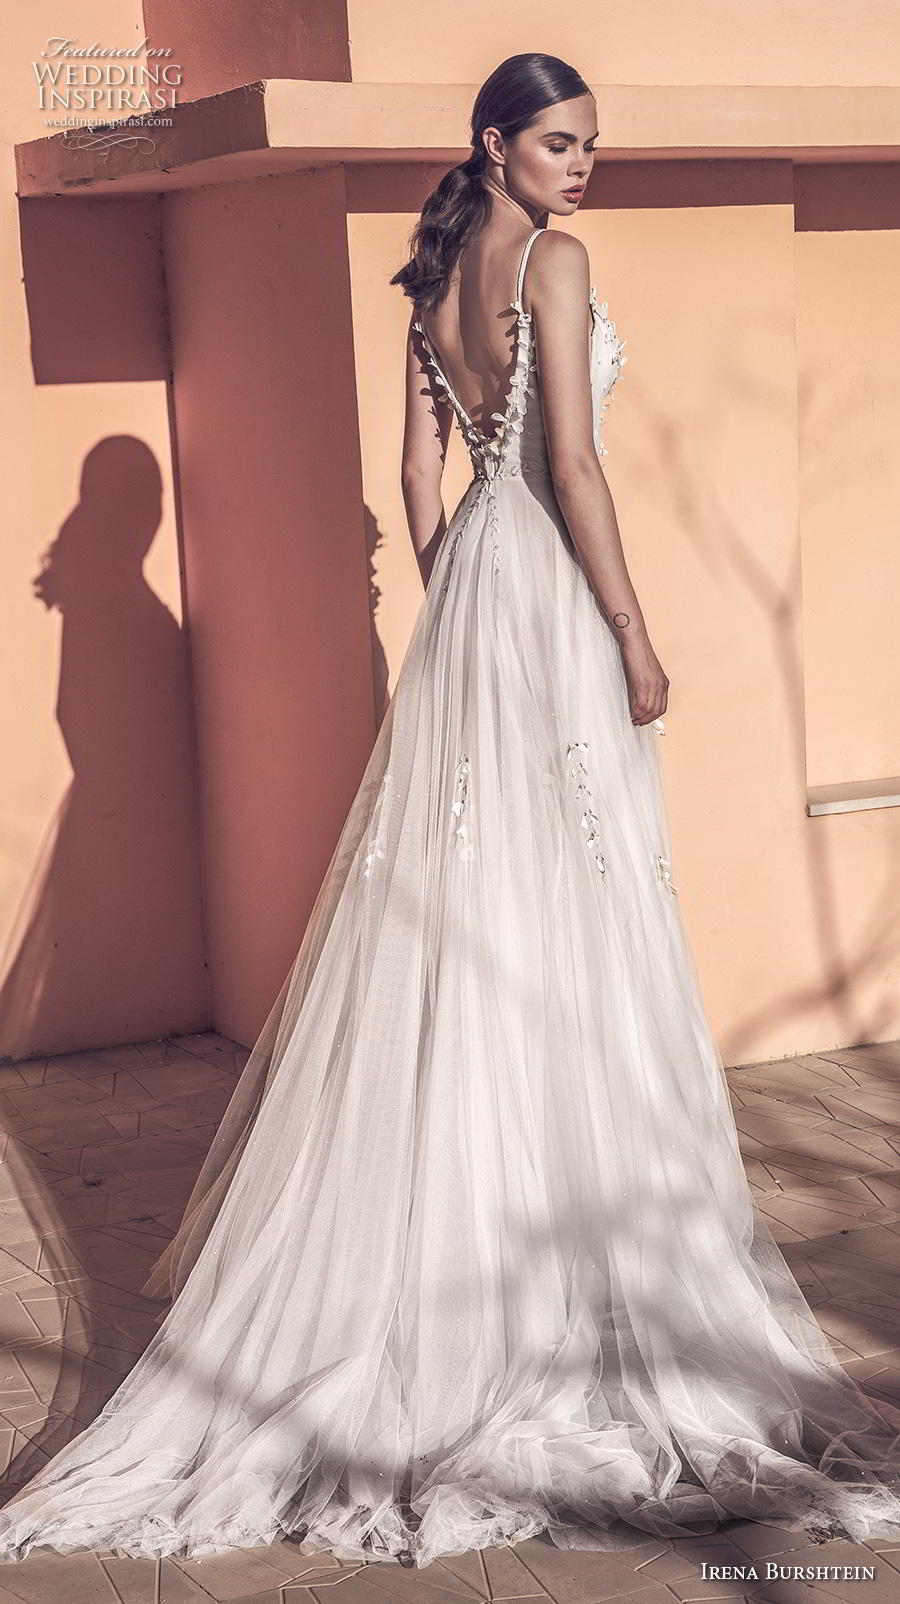 irena burshtein 2020 bridal sleeveless thin strap deep plunging sweetheart neckline heavily embellished bodice tulle skirt romantic soft a  line wedding dress backless v back chapel train (9) bv